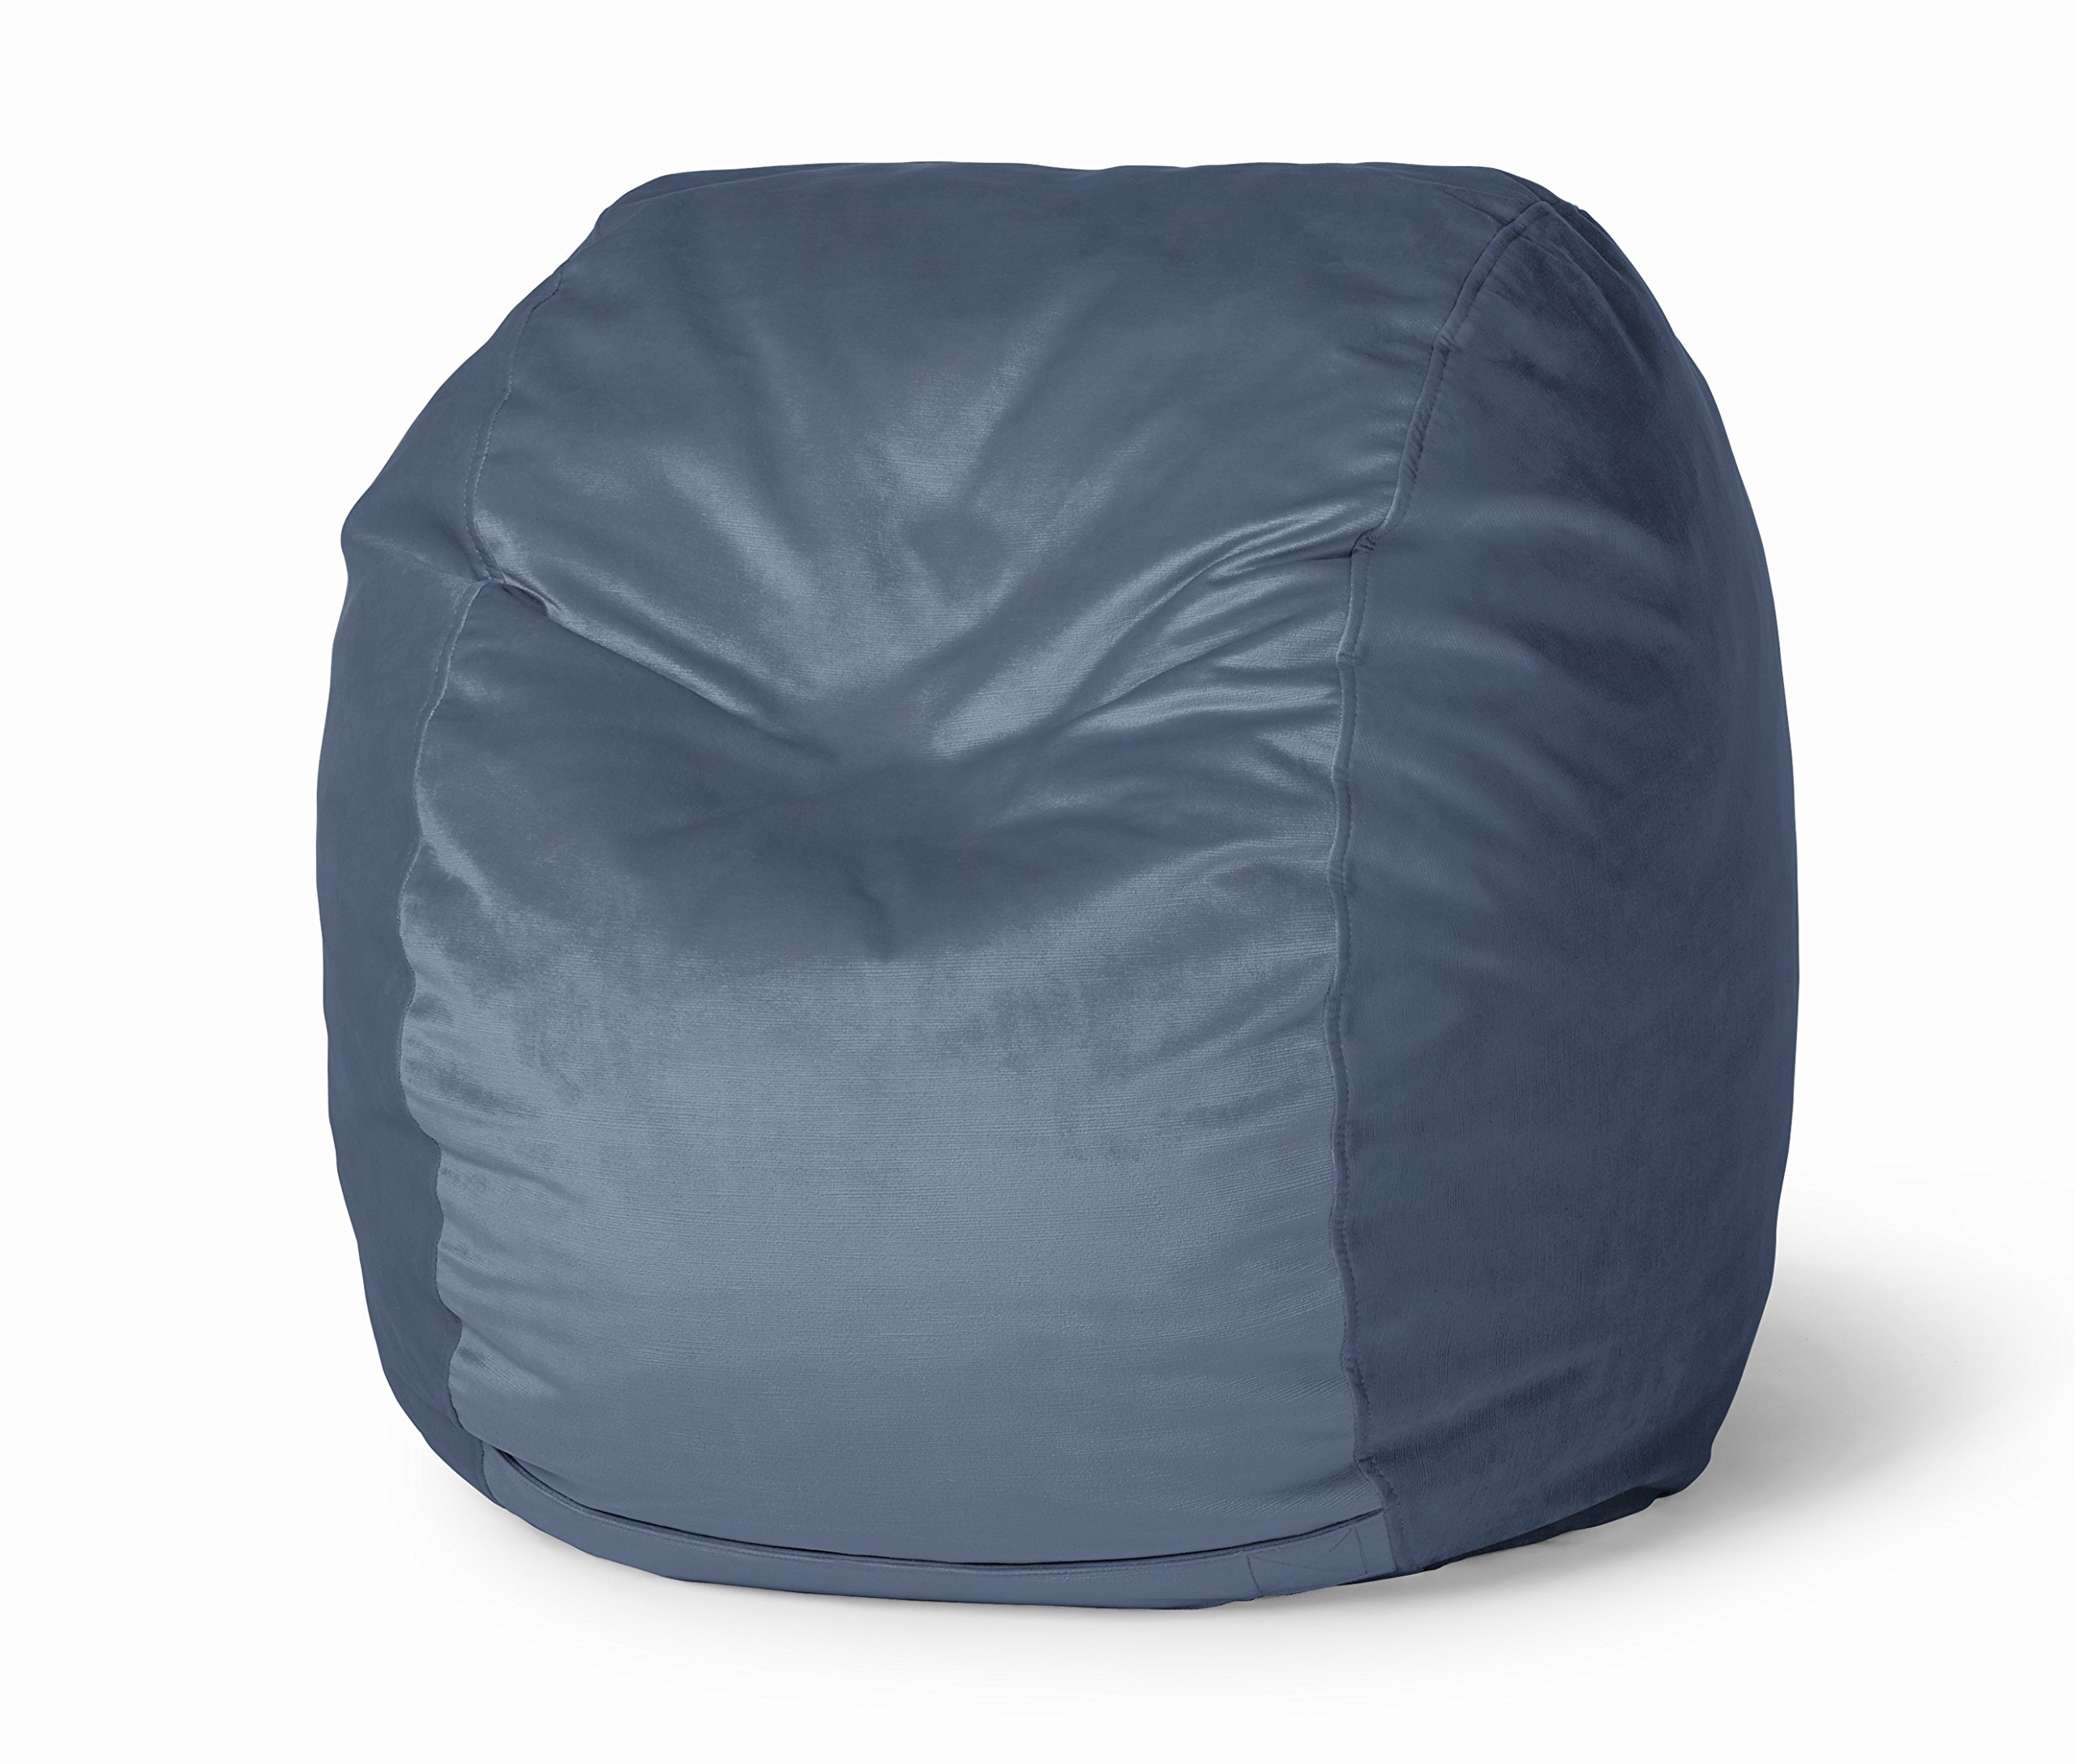 """Take Ten Small 30"""" Luxury Bean Bag Chair – Multiple Colors / Seats 1 Child / Durable and Comfortable"""